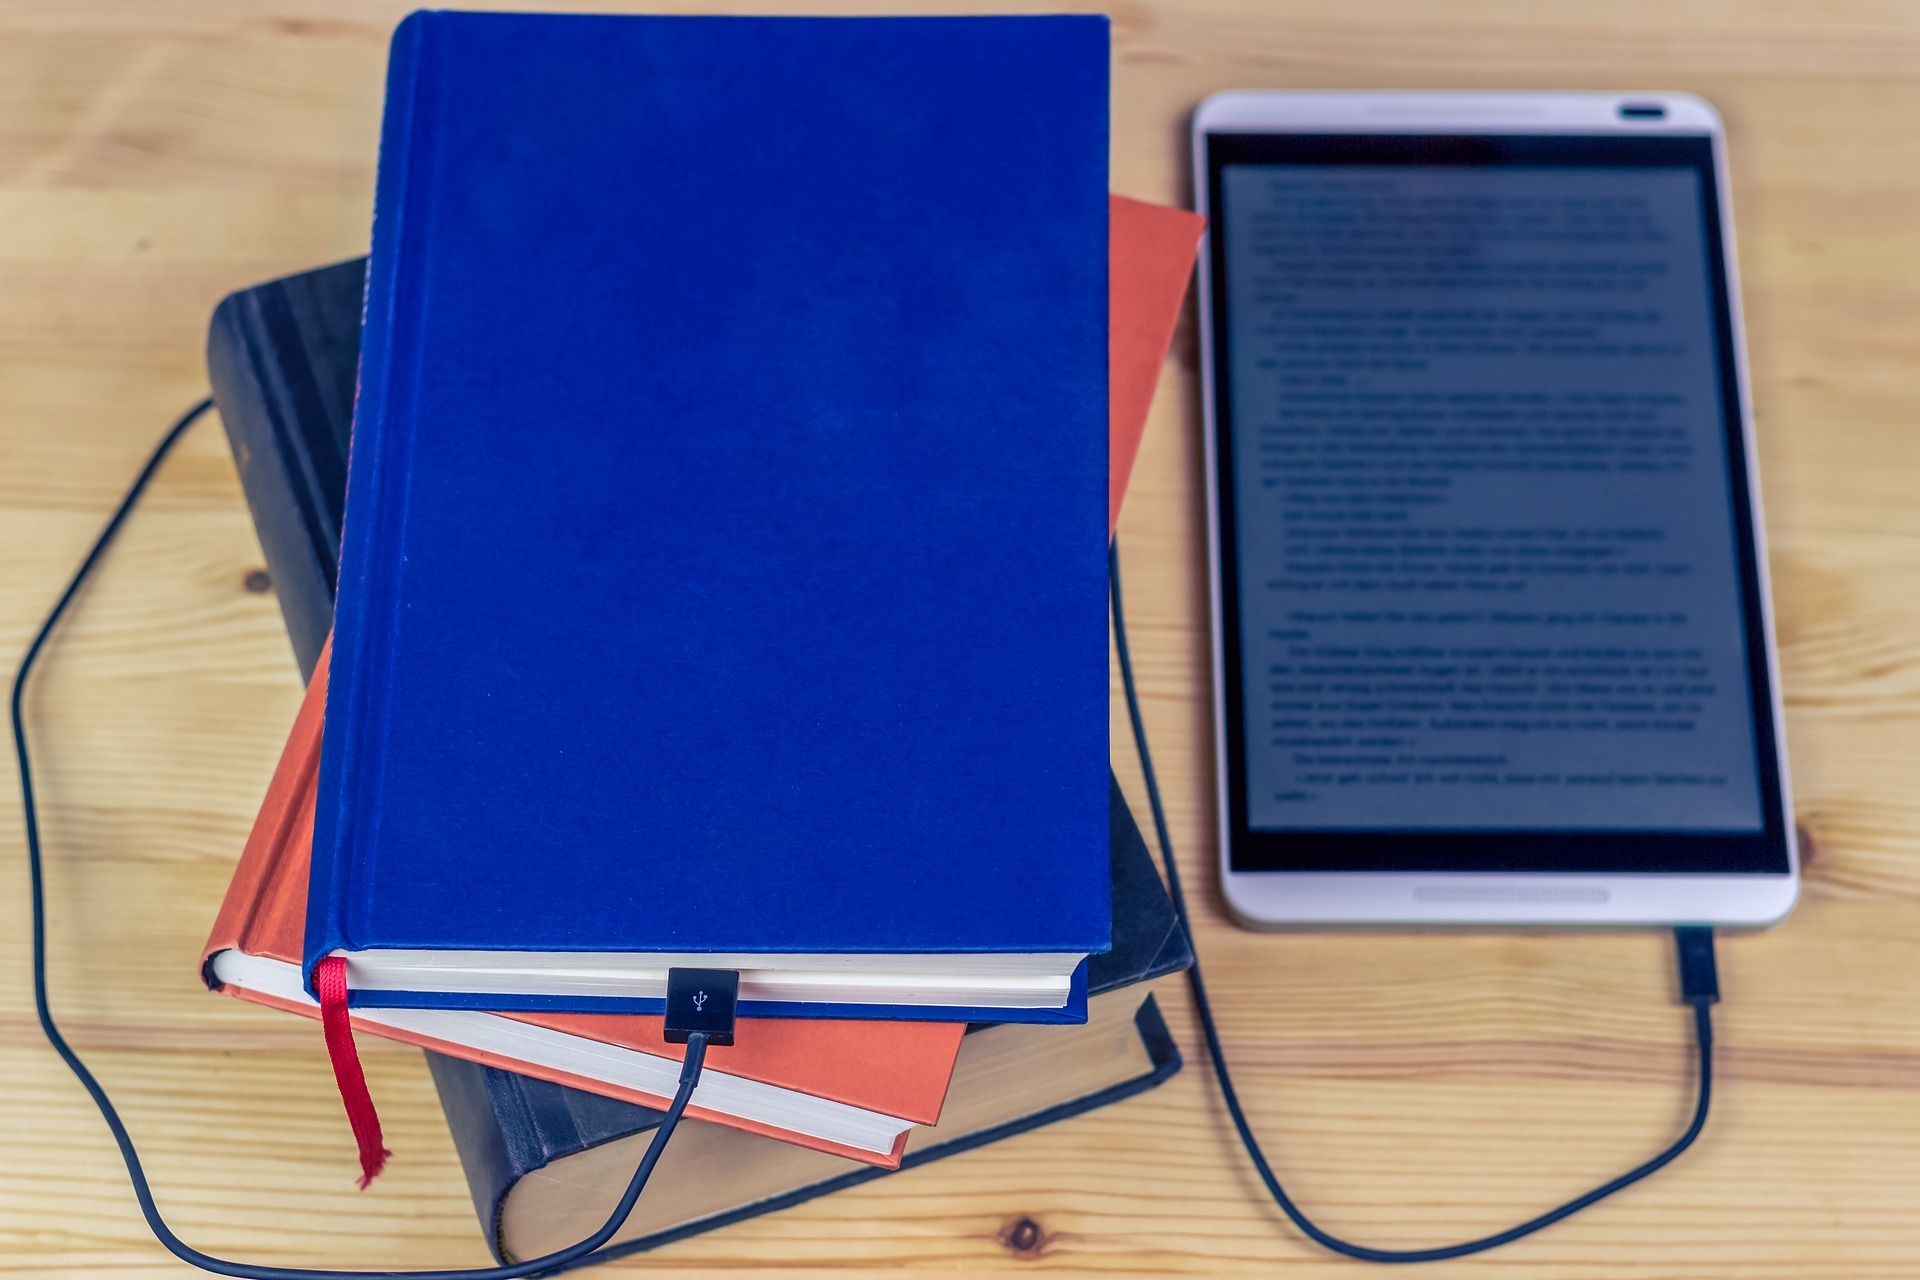 ereader plugged into a hardcover book